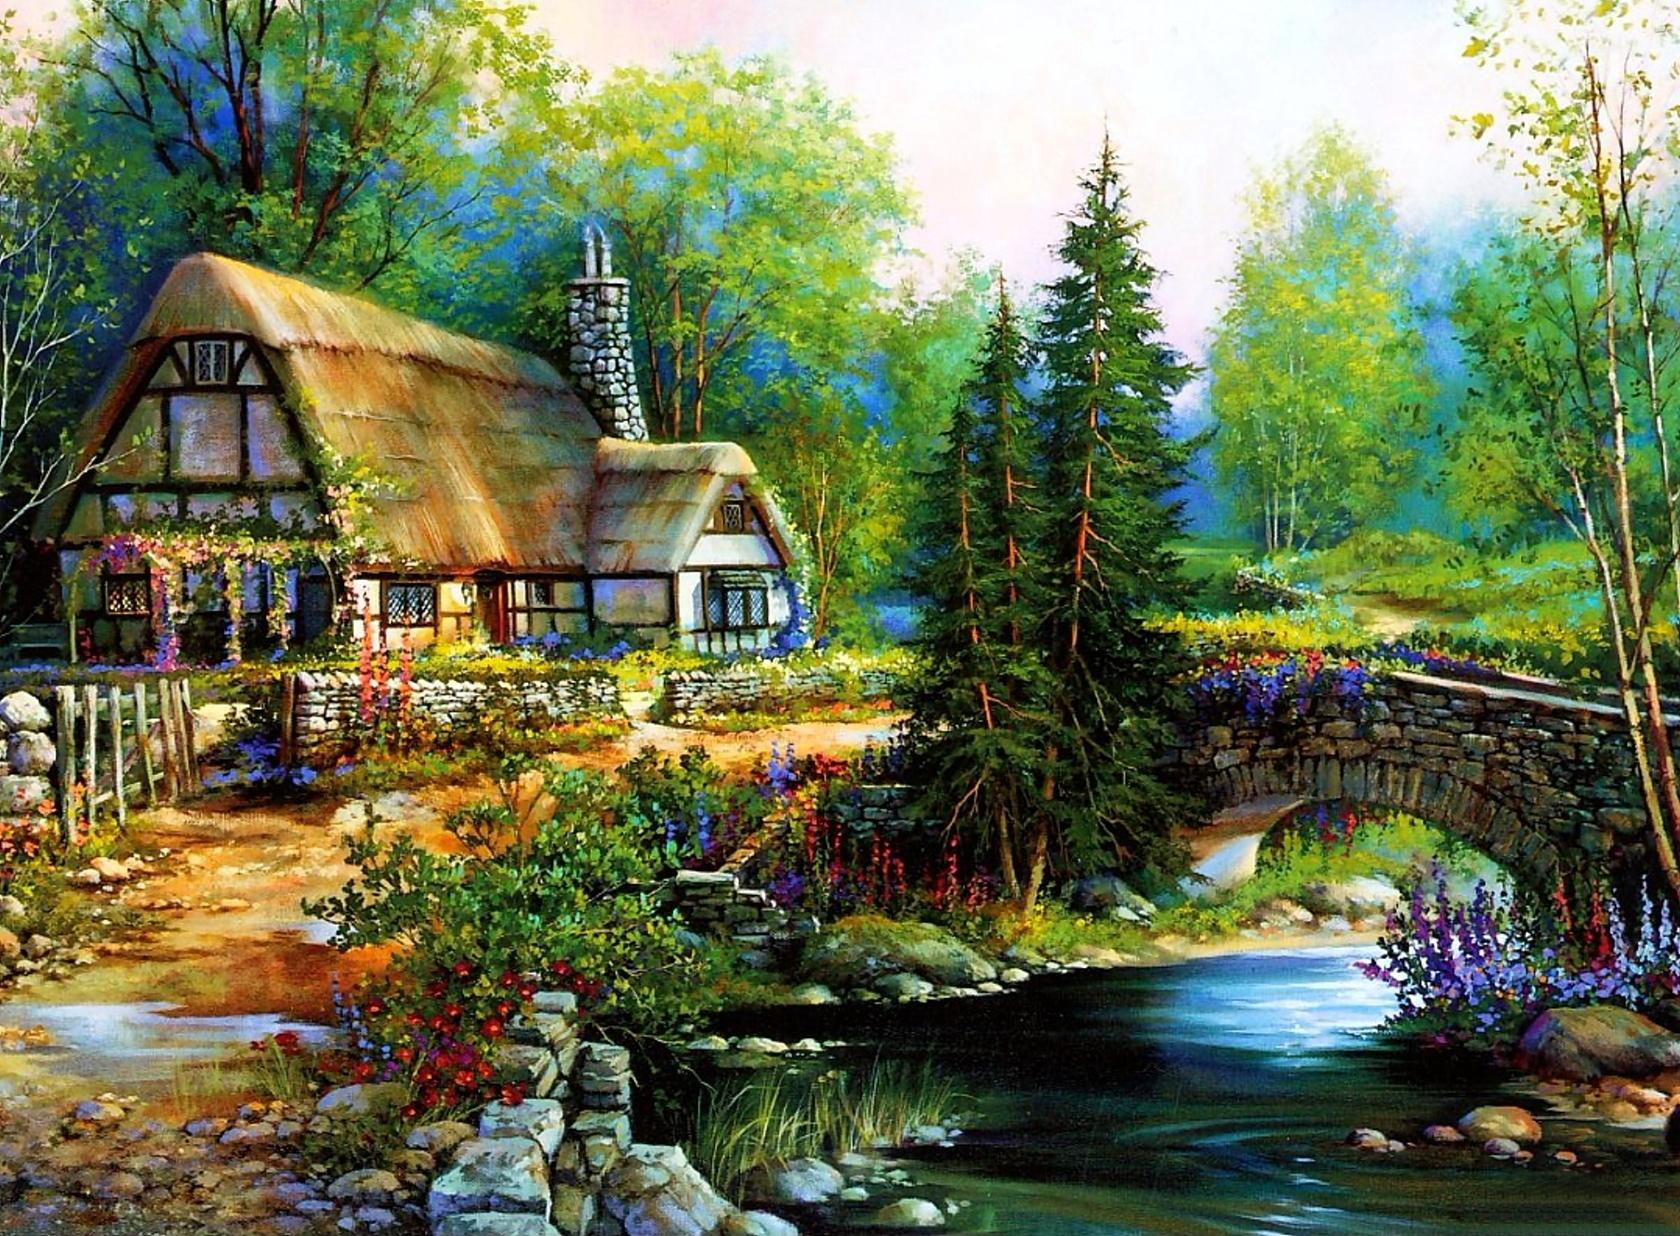 44 Cottage In The Woods Wallpaper On Wallpapersafari